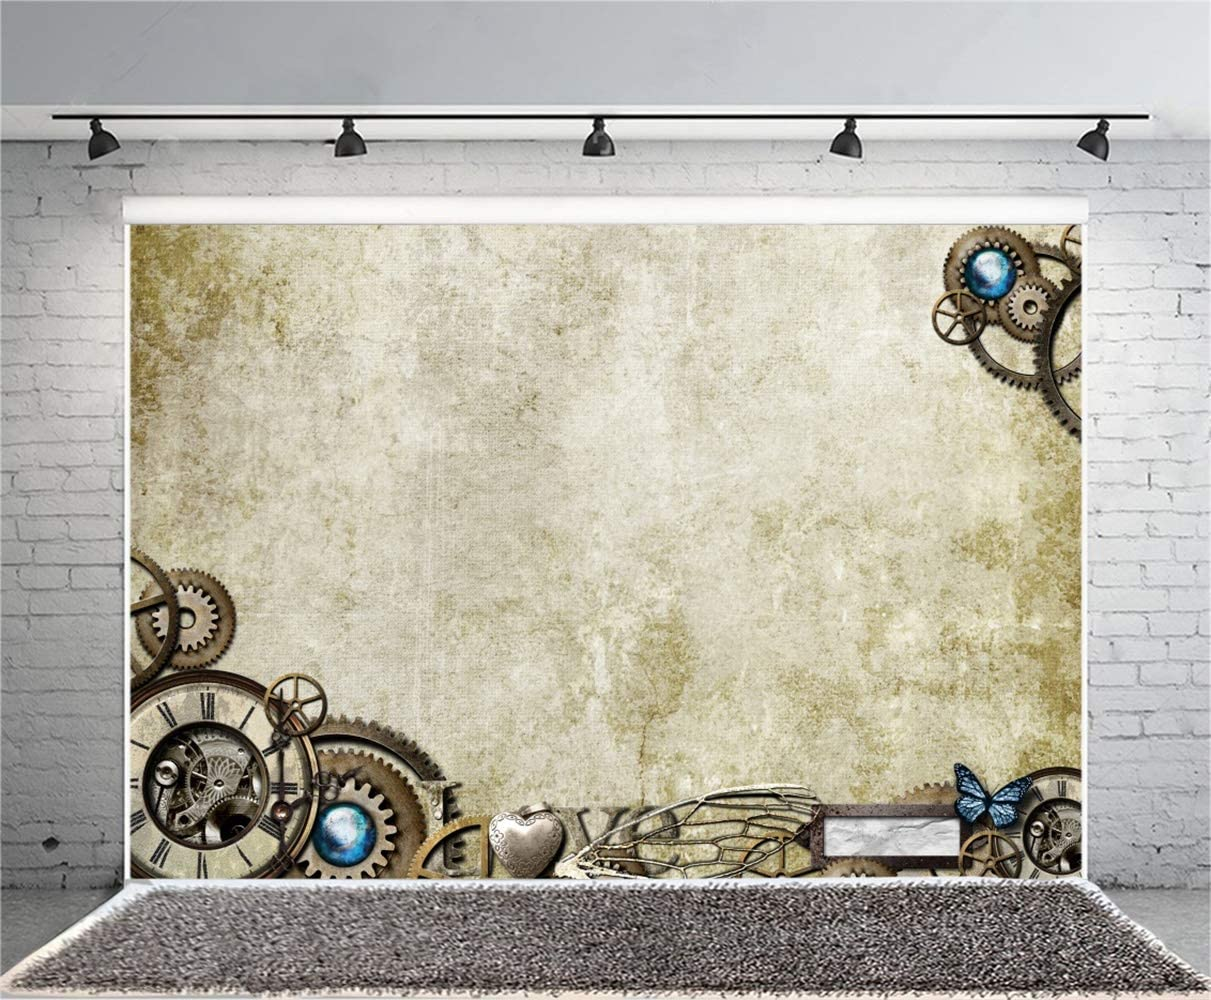 10x7ft Steampunk Theme Vinyl Photography Background Retro Abstract Wall Old Metallic Gears Backdrop Child Adult Artistic Portrait Shoot Nostalgia Wallpaper Studio Props